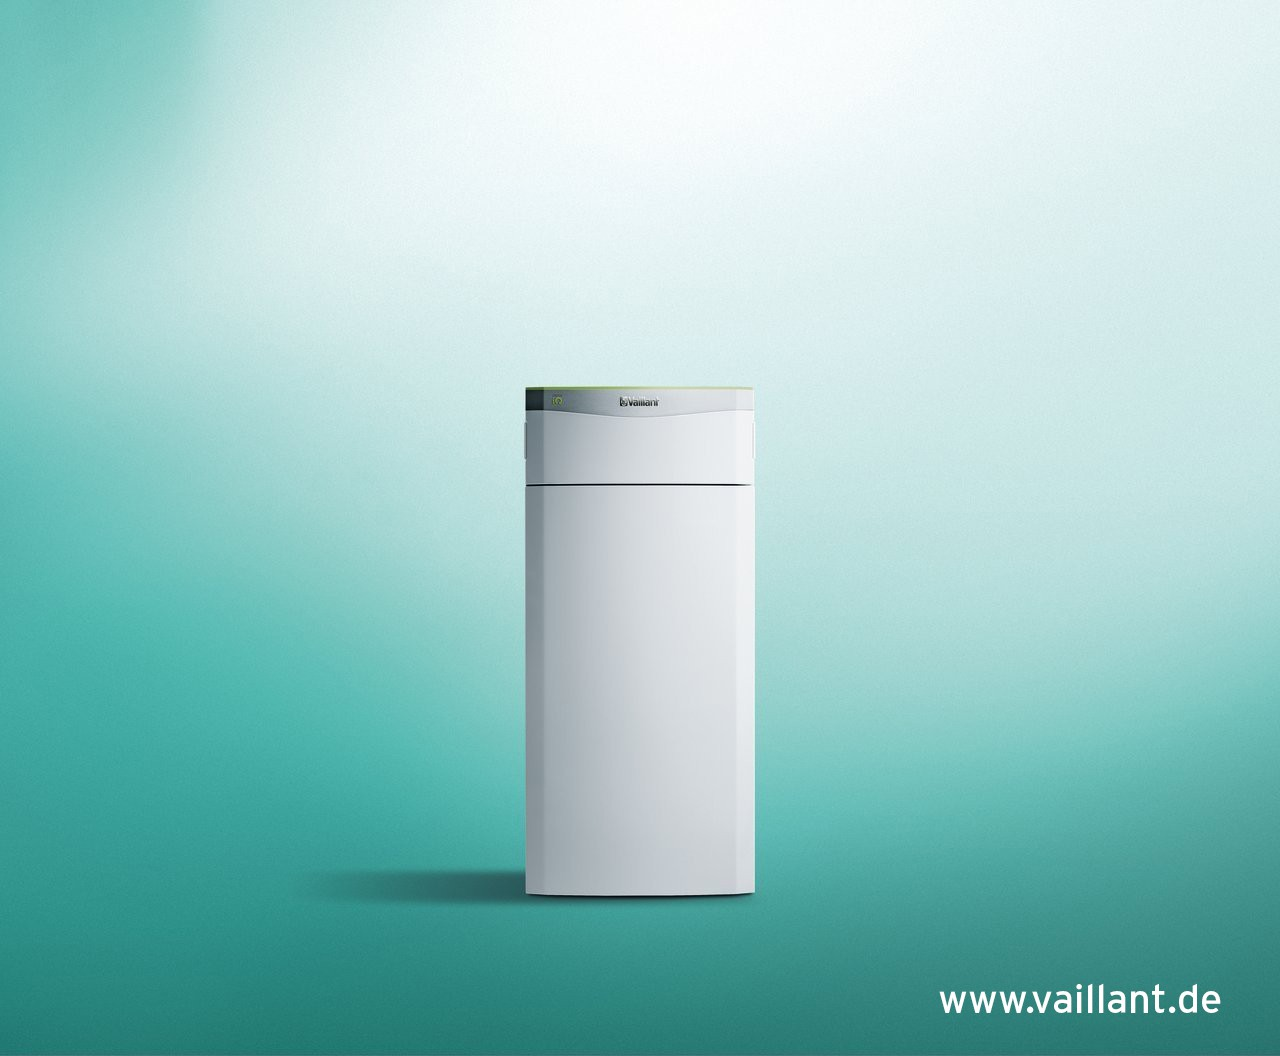 Vaillant VAILLANT Set 4.62 flexoTHERM